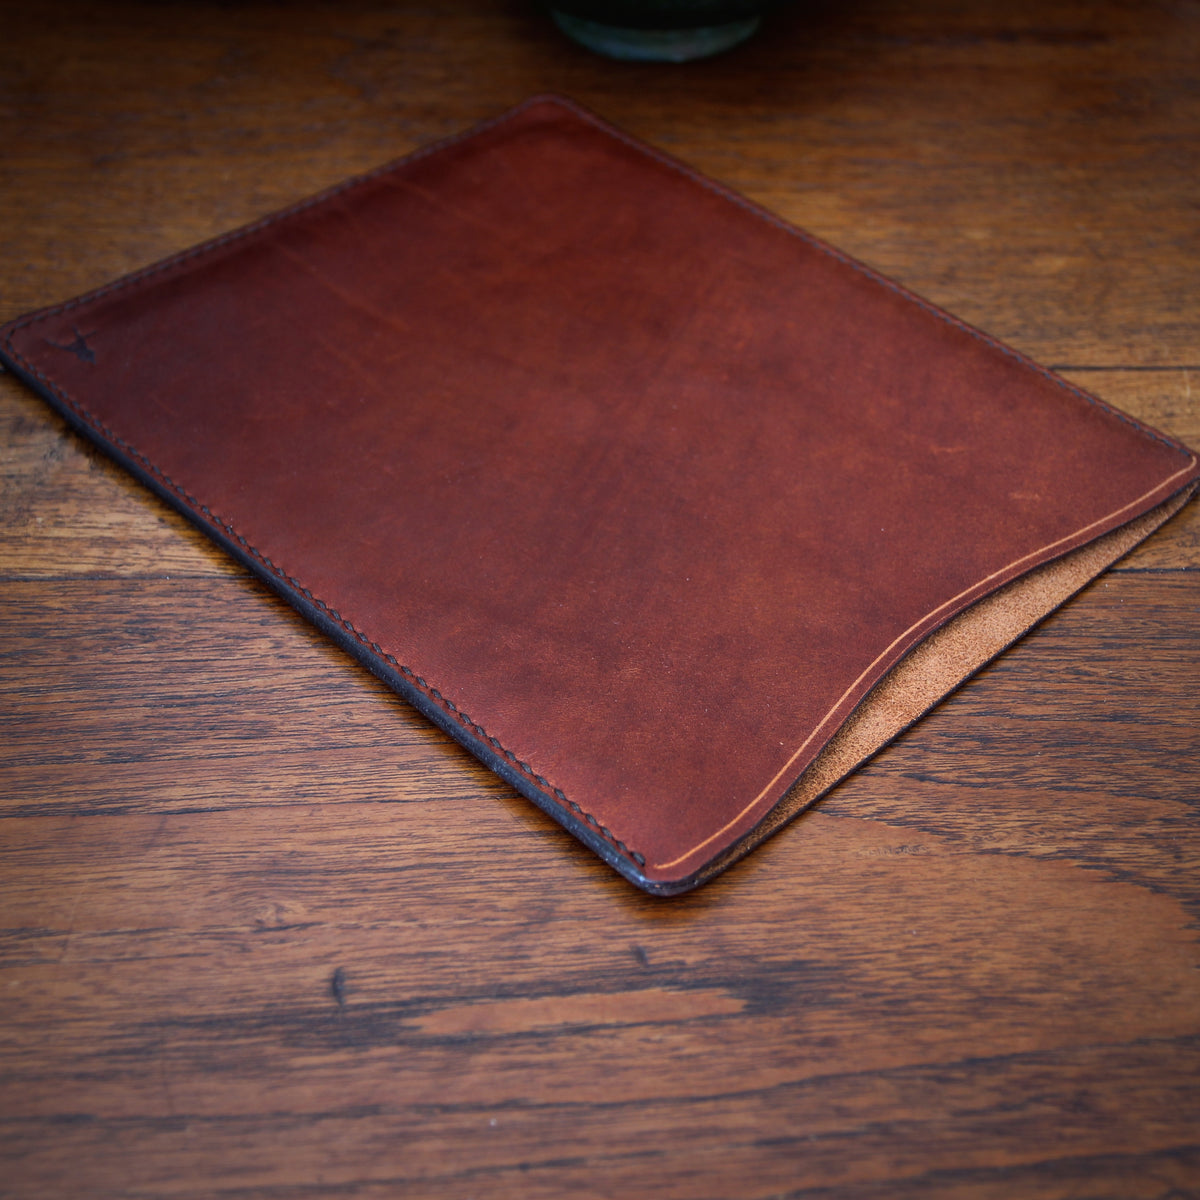 Rustic Hand-Stitched iPad Sleeve